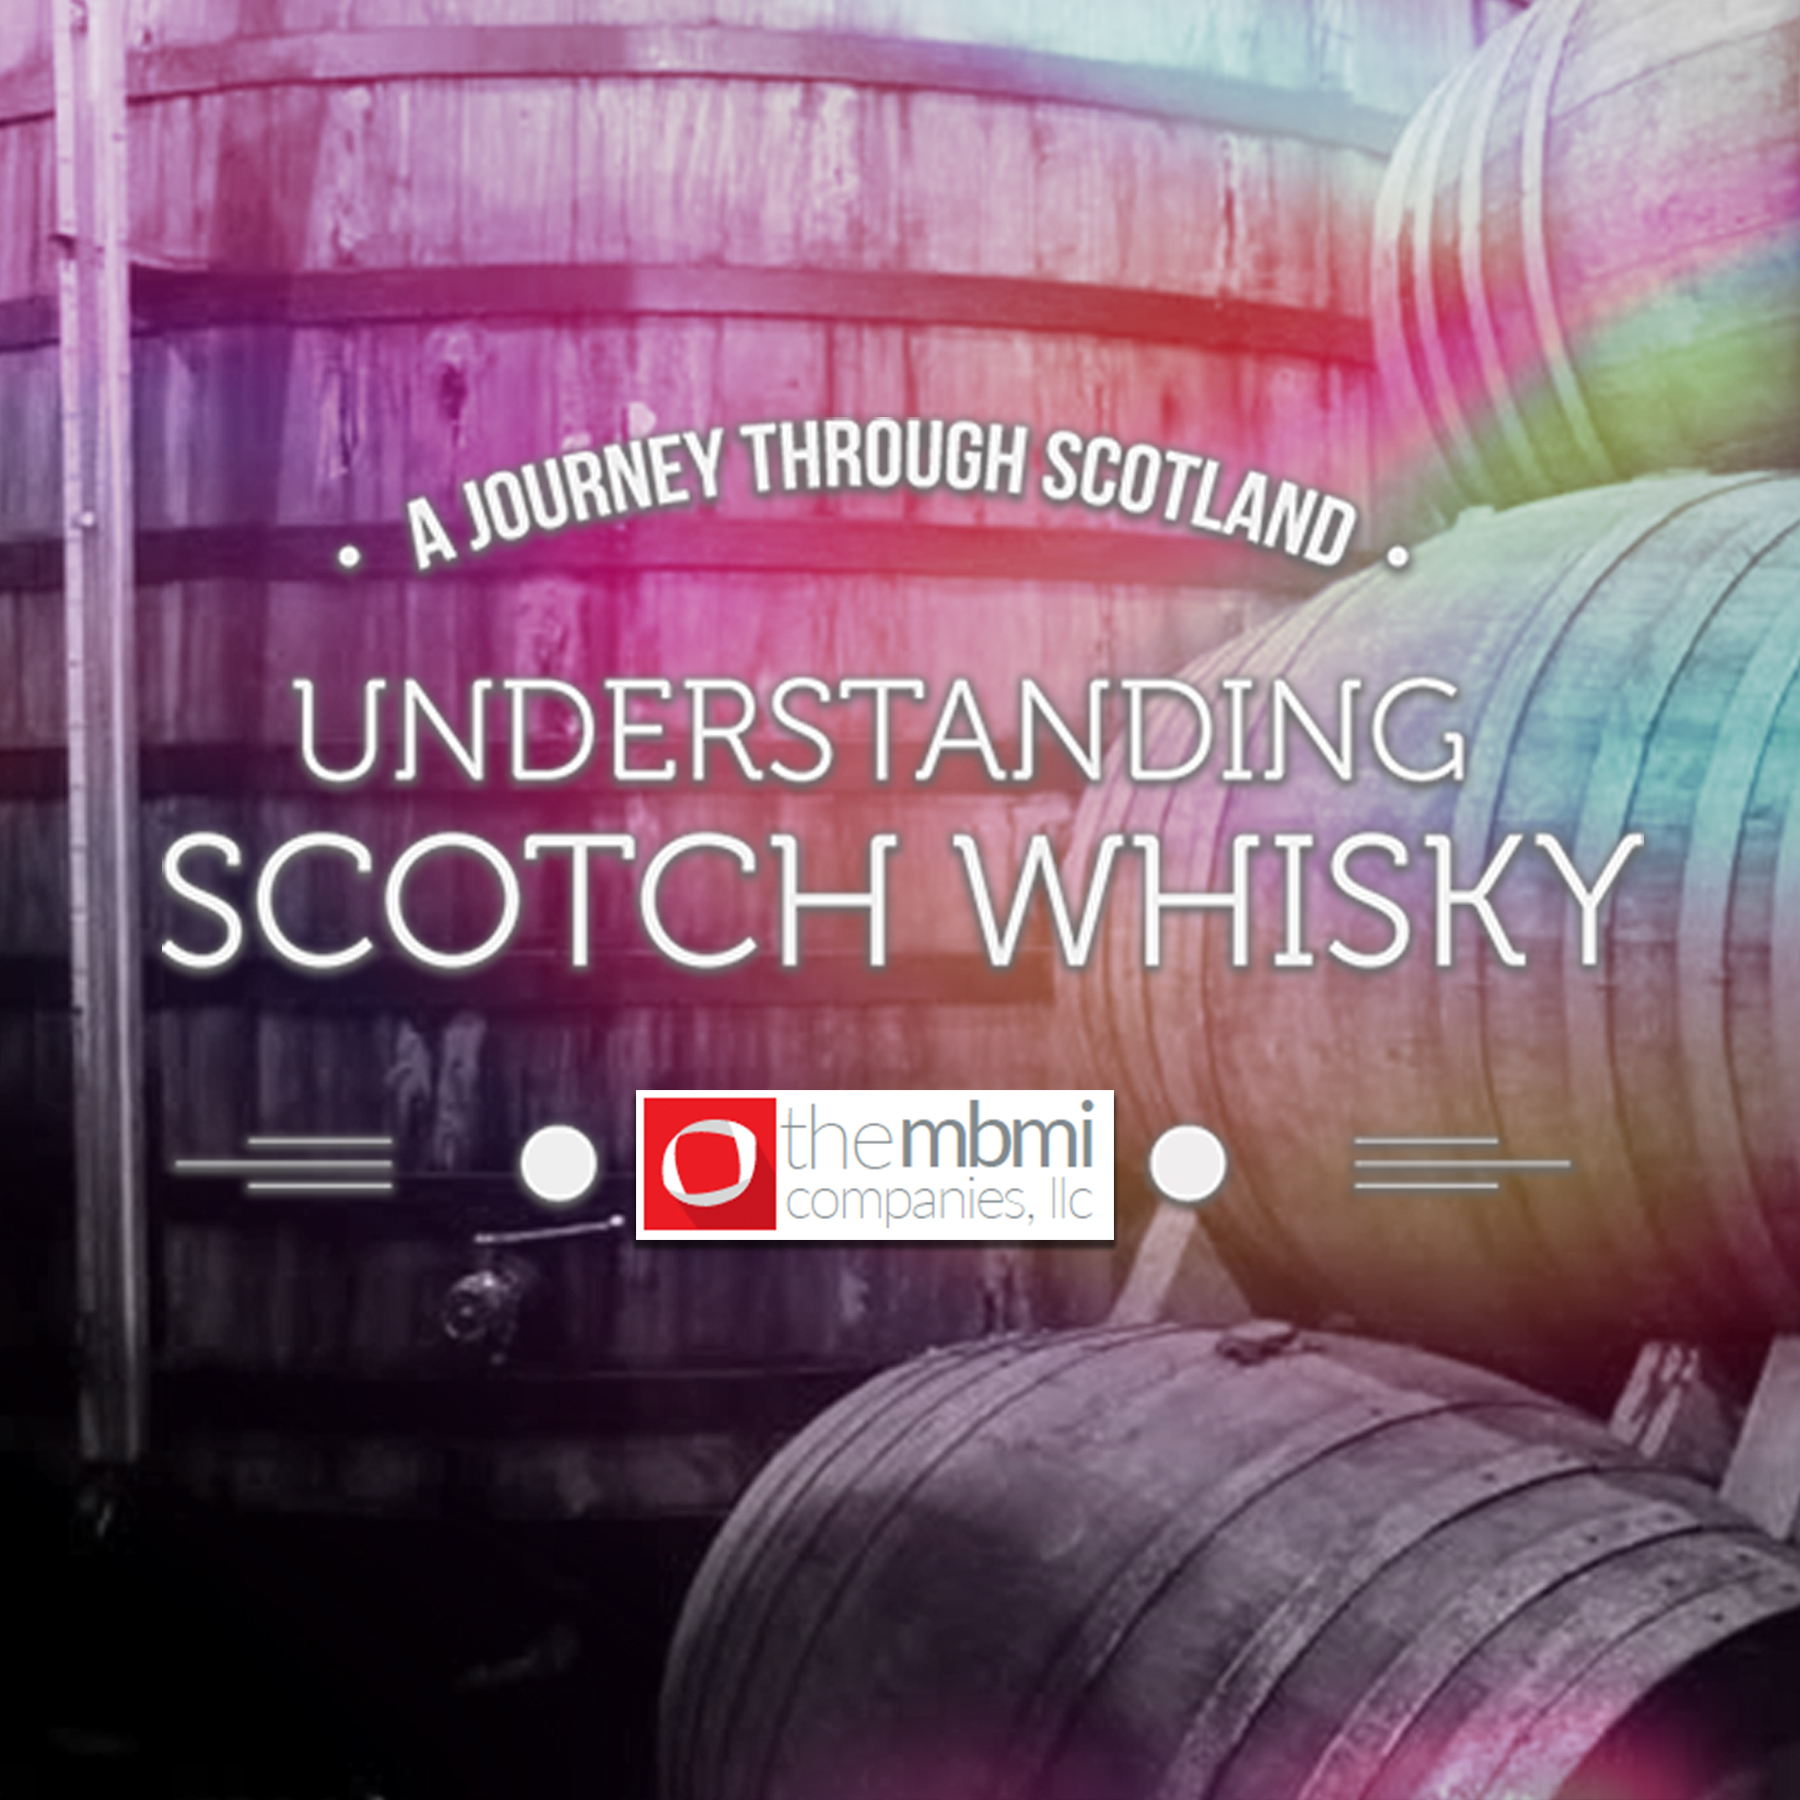 A Journey Through Scotland: Understanding Scotch Whisky